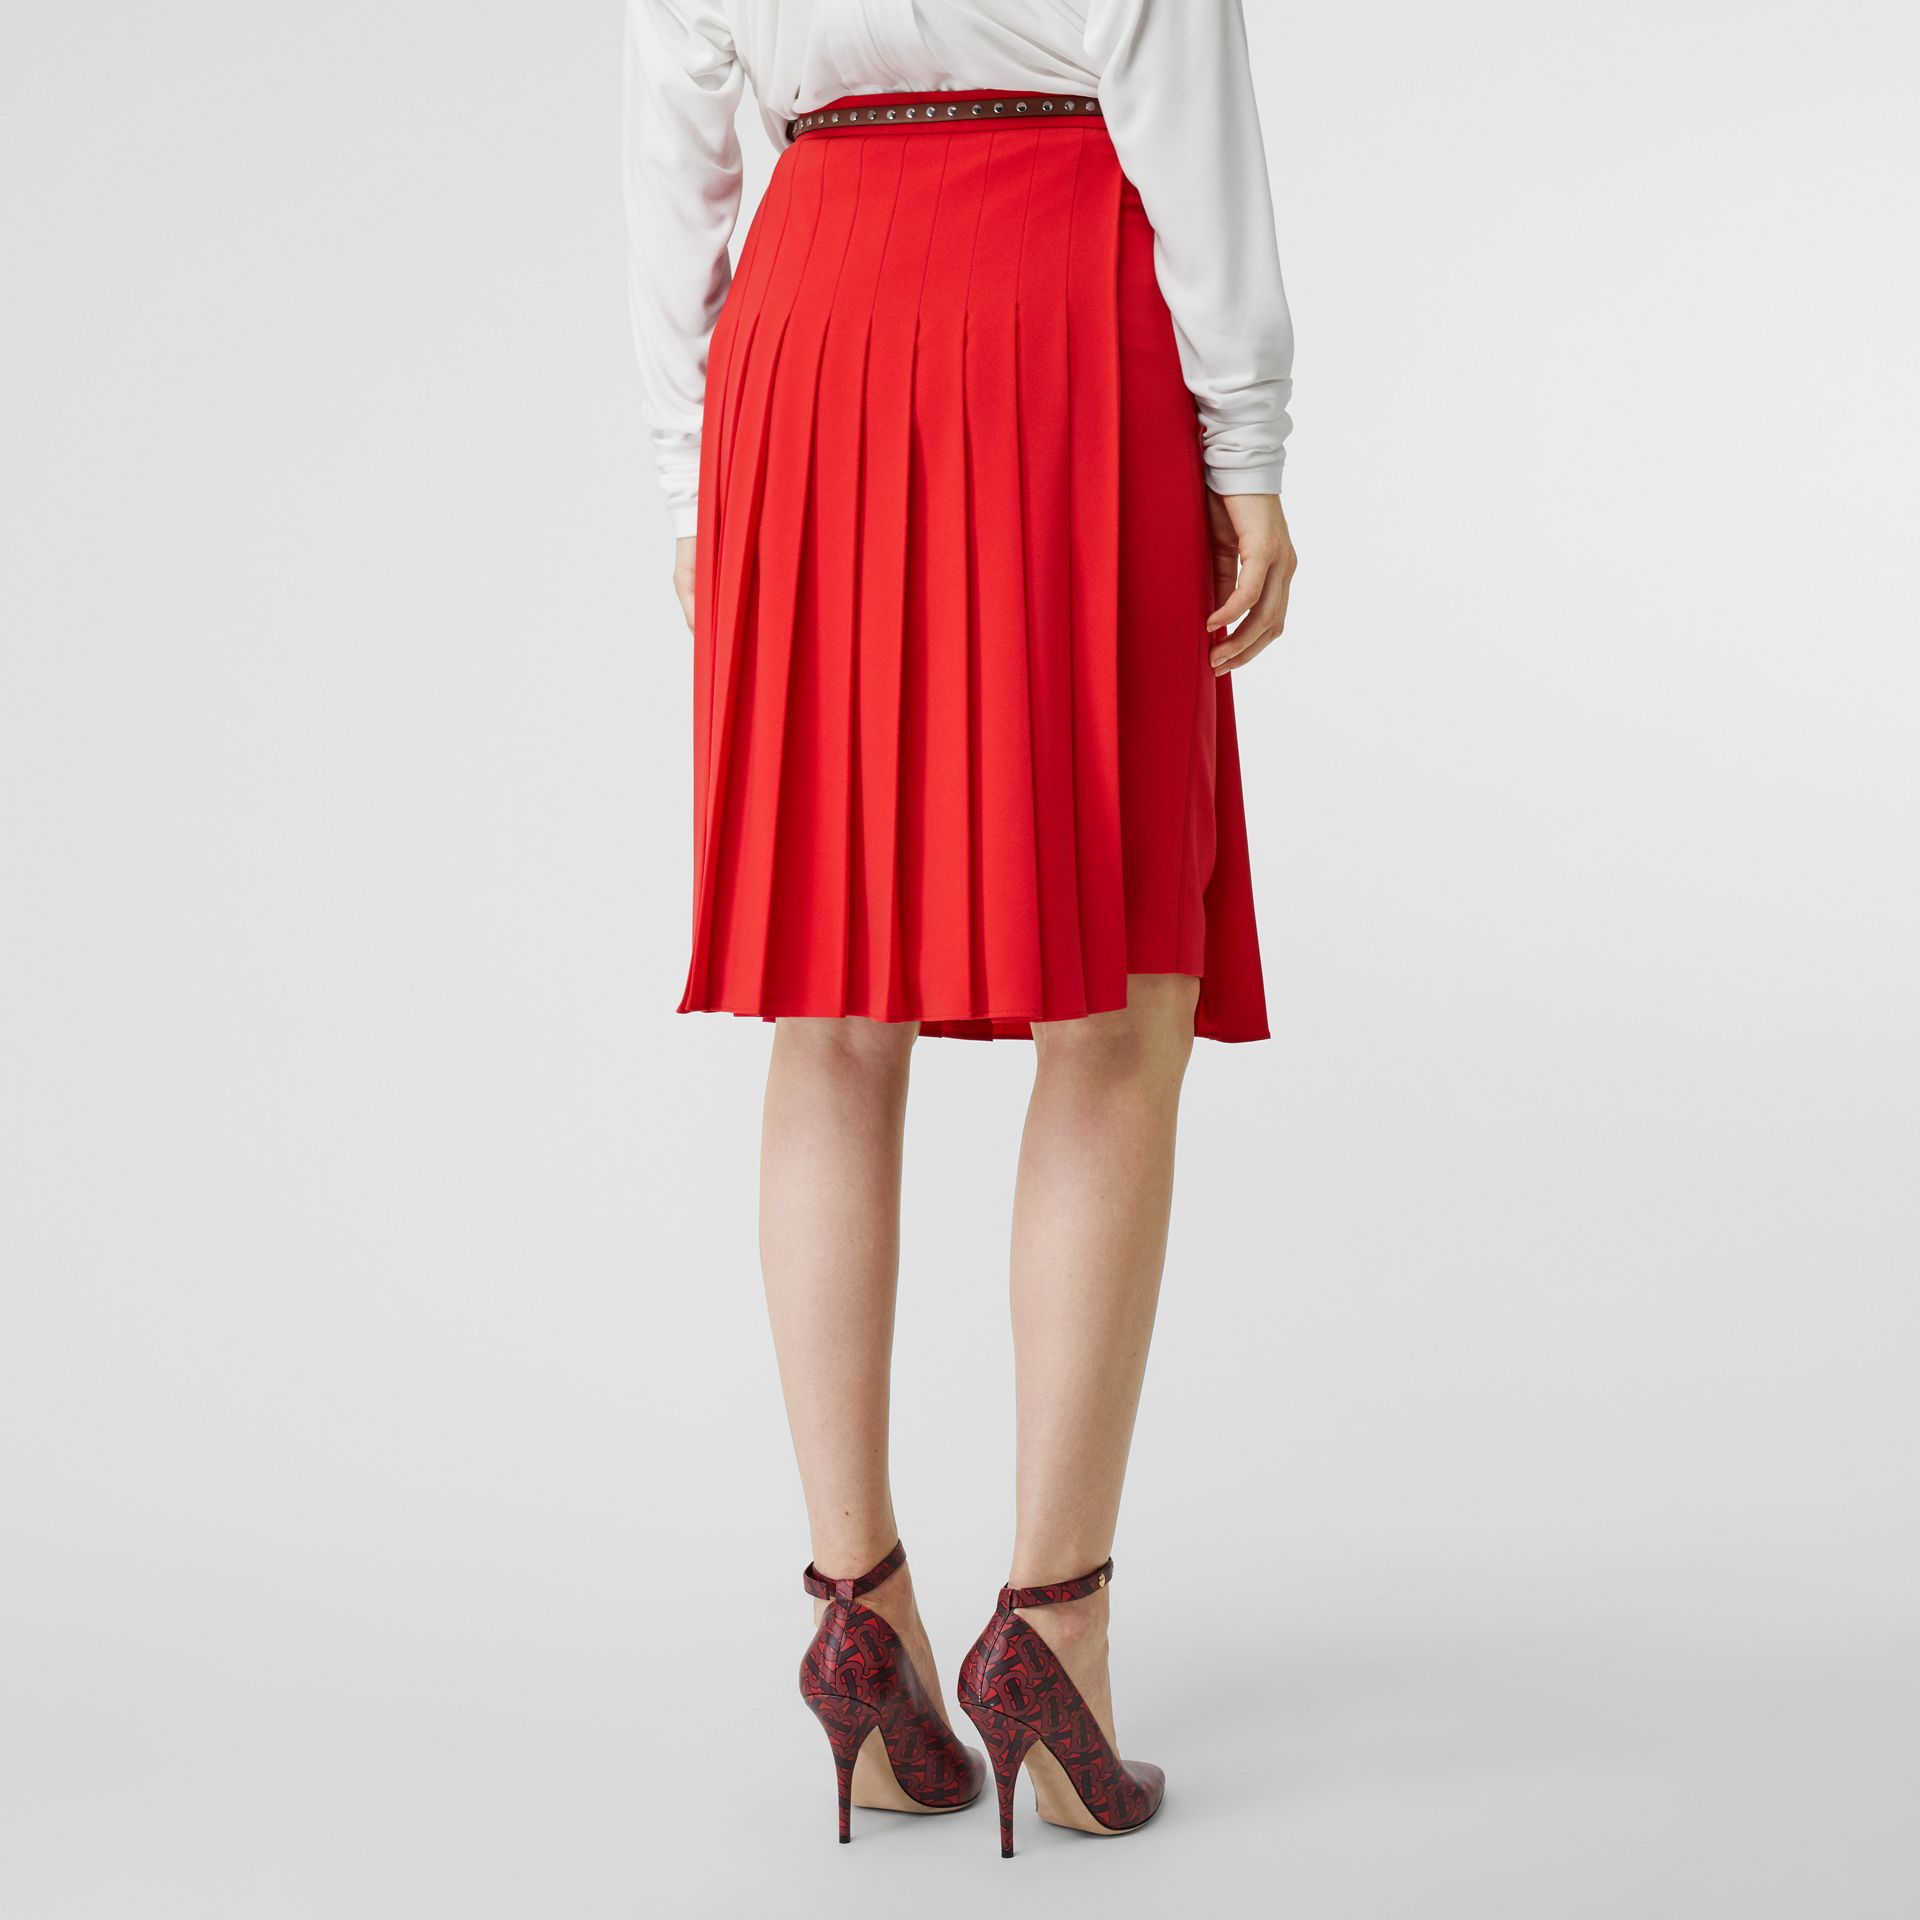 Stretch Cady Pleated Skirt in Bright Red - Women | Burberry Australia - gallery image 2